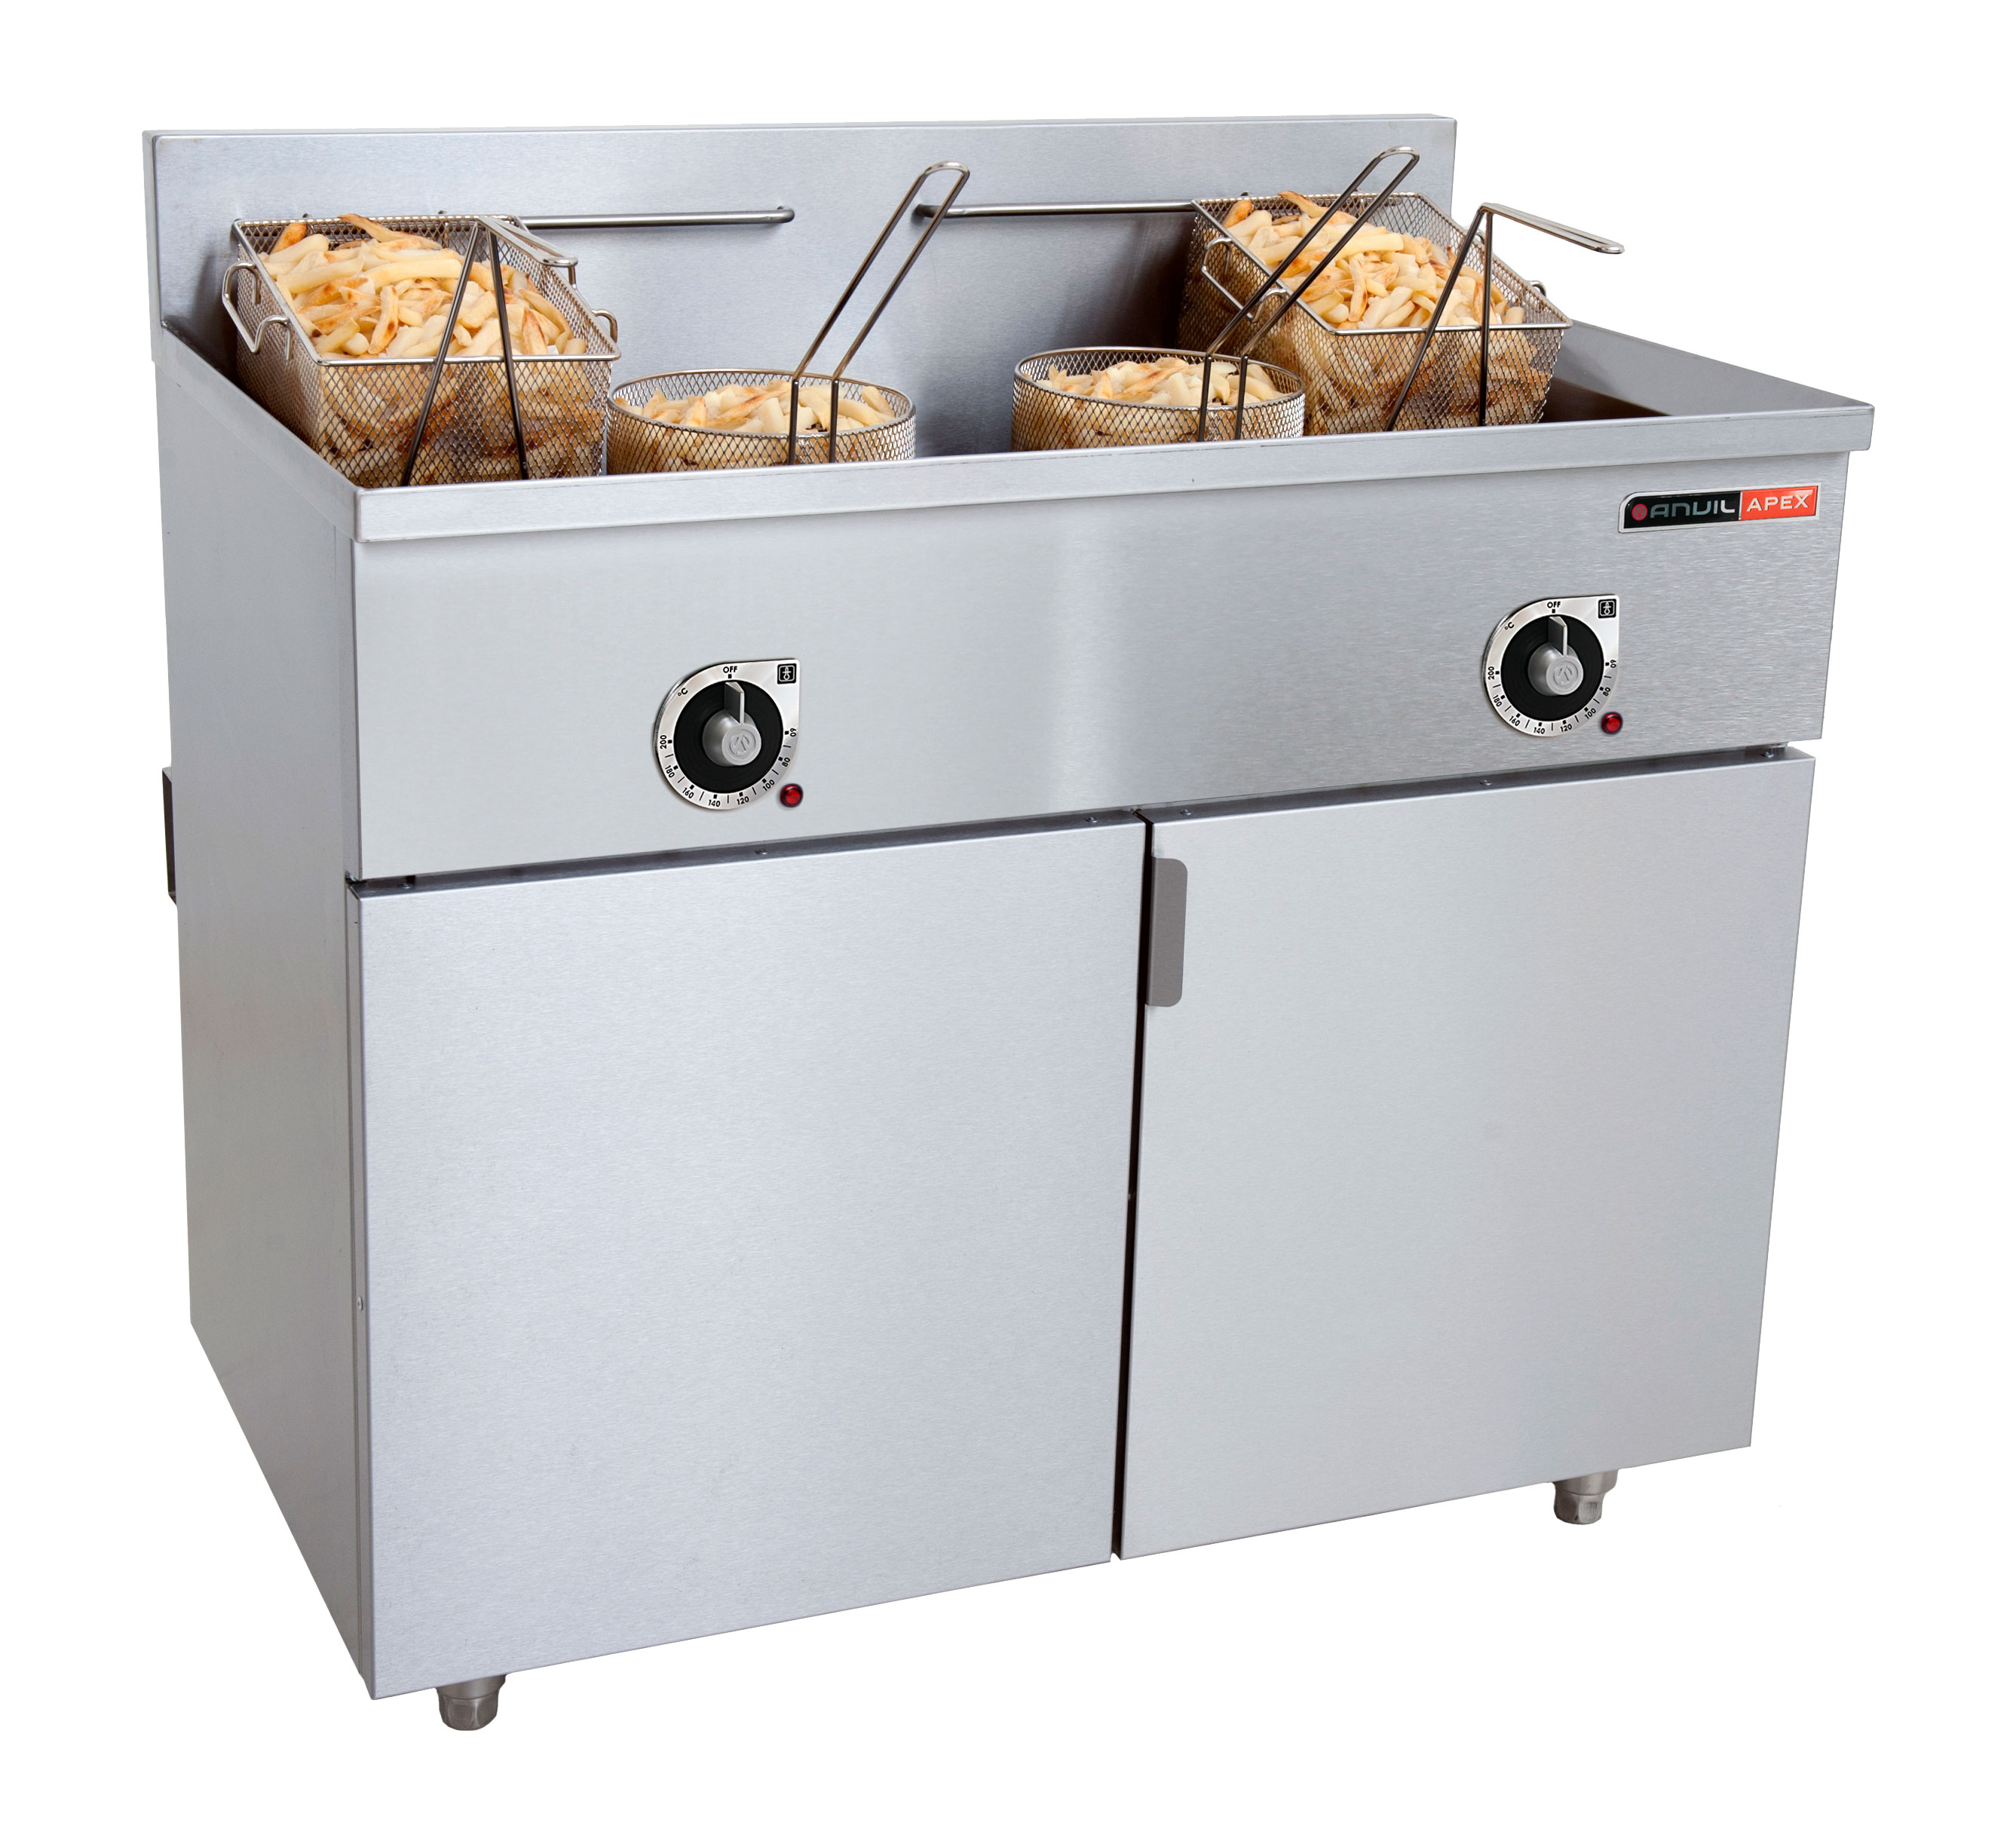 FISH FRYER ANVIL - 2 x 20Lt - 33kW - ELEC